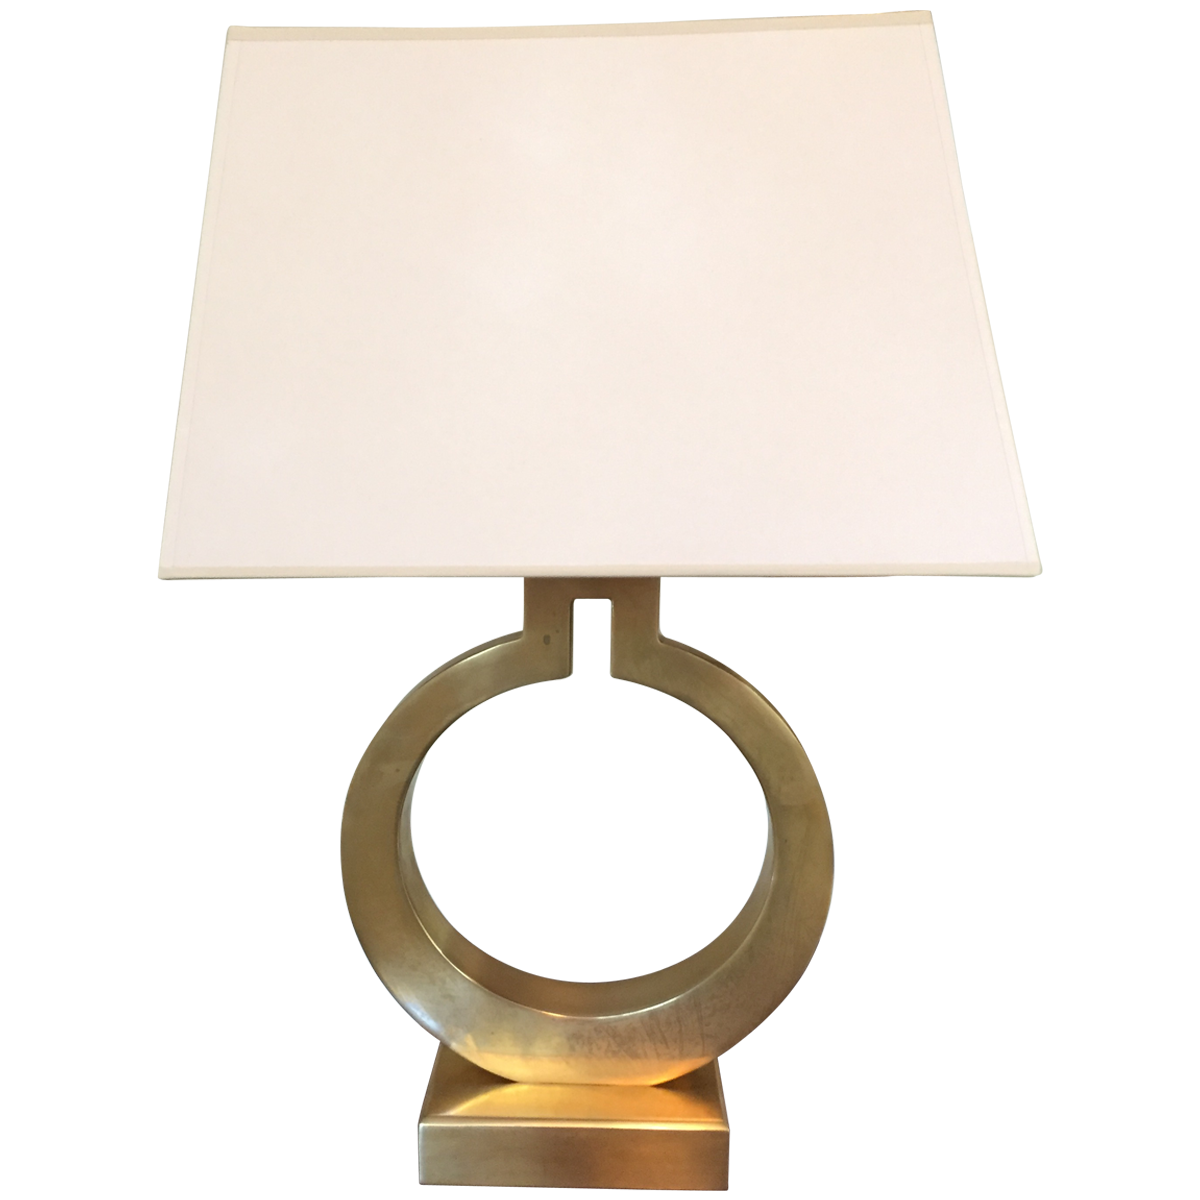 Ef chapman ring table lamp brass tables and table lamps ef chapman ring table lamp visual comforttable lampsbrass geotapseo Gallery